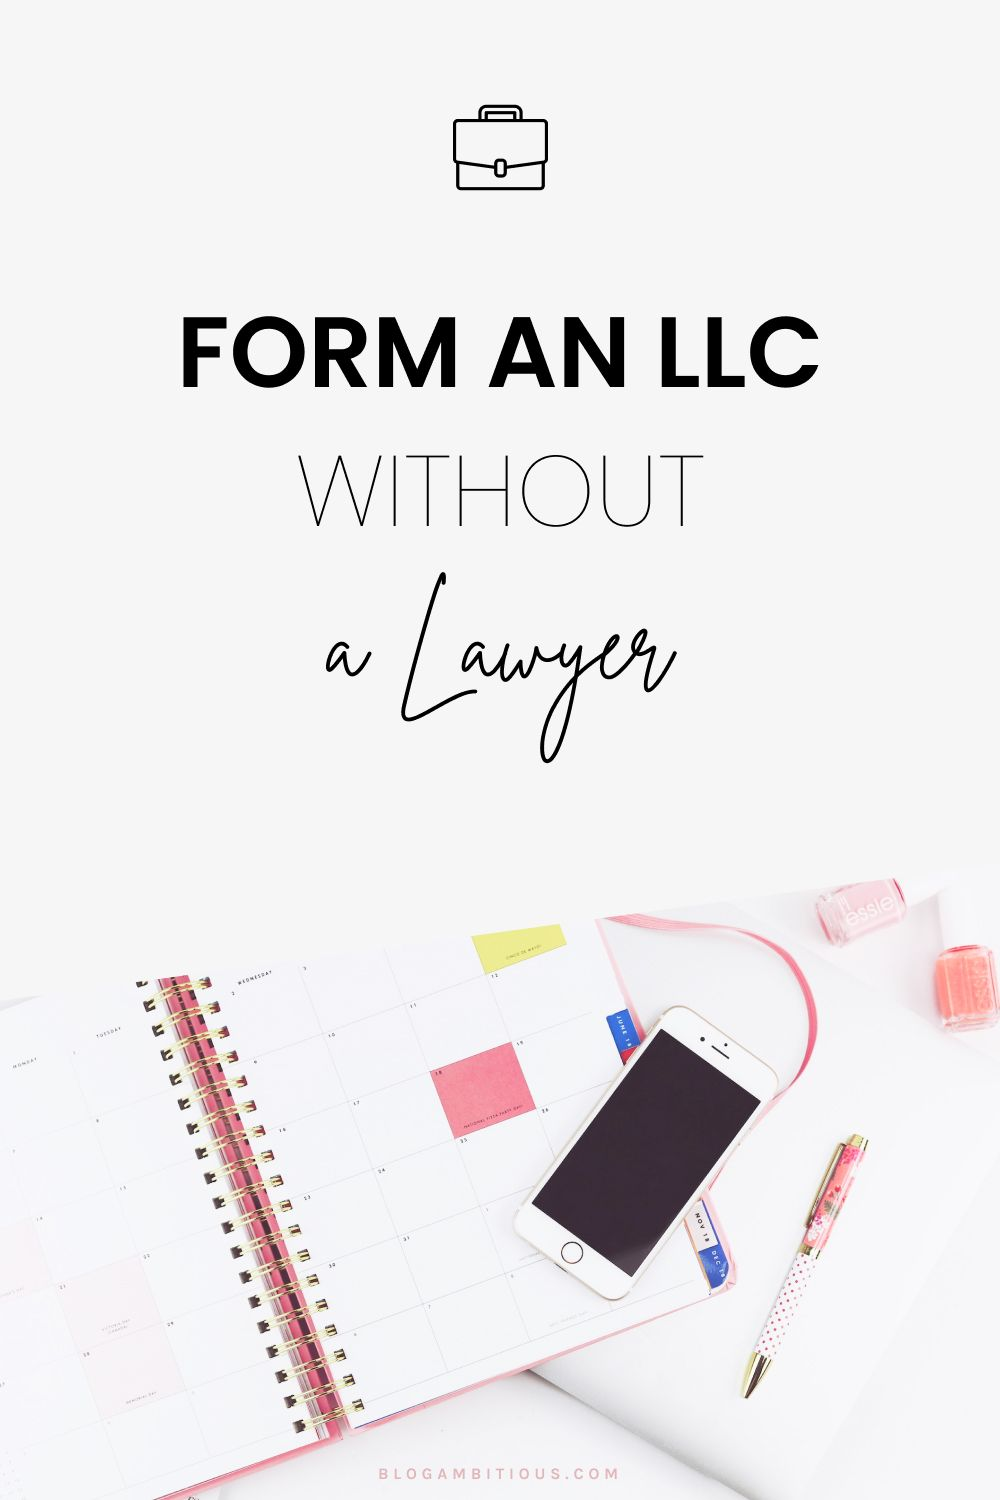 How to Form an LLC without a Lawyer (all by yo' self